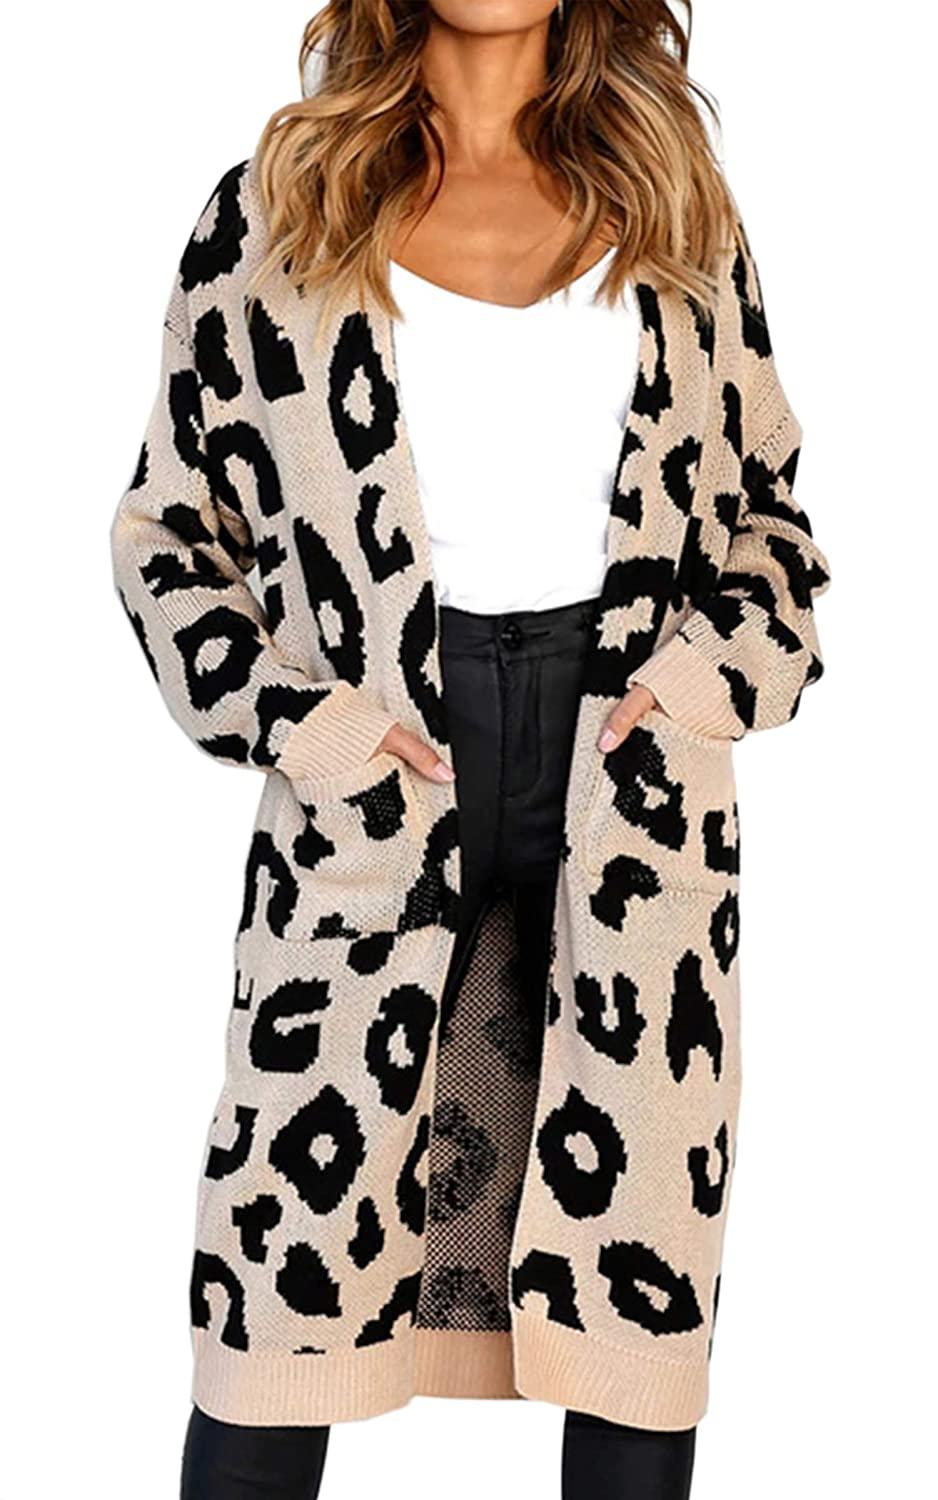 ee737ff99cb8 Style: Leopard Print, Long Knitting Cardigan, Casual, Elegant, Loose, Long  Sleeves. Occasion: Spring, Fall, Party, Date, Vacation, Daily Wearing,  Work, ...